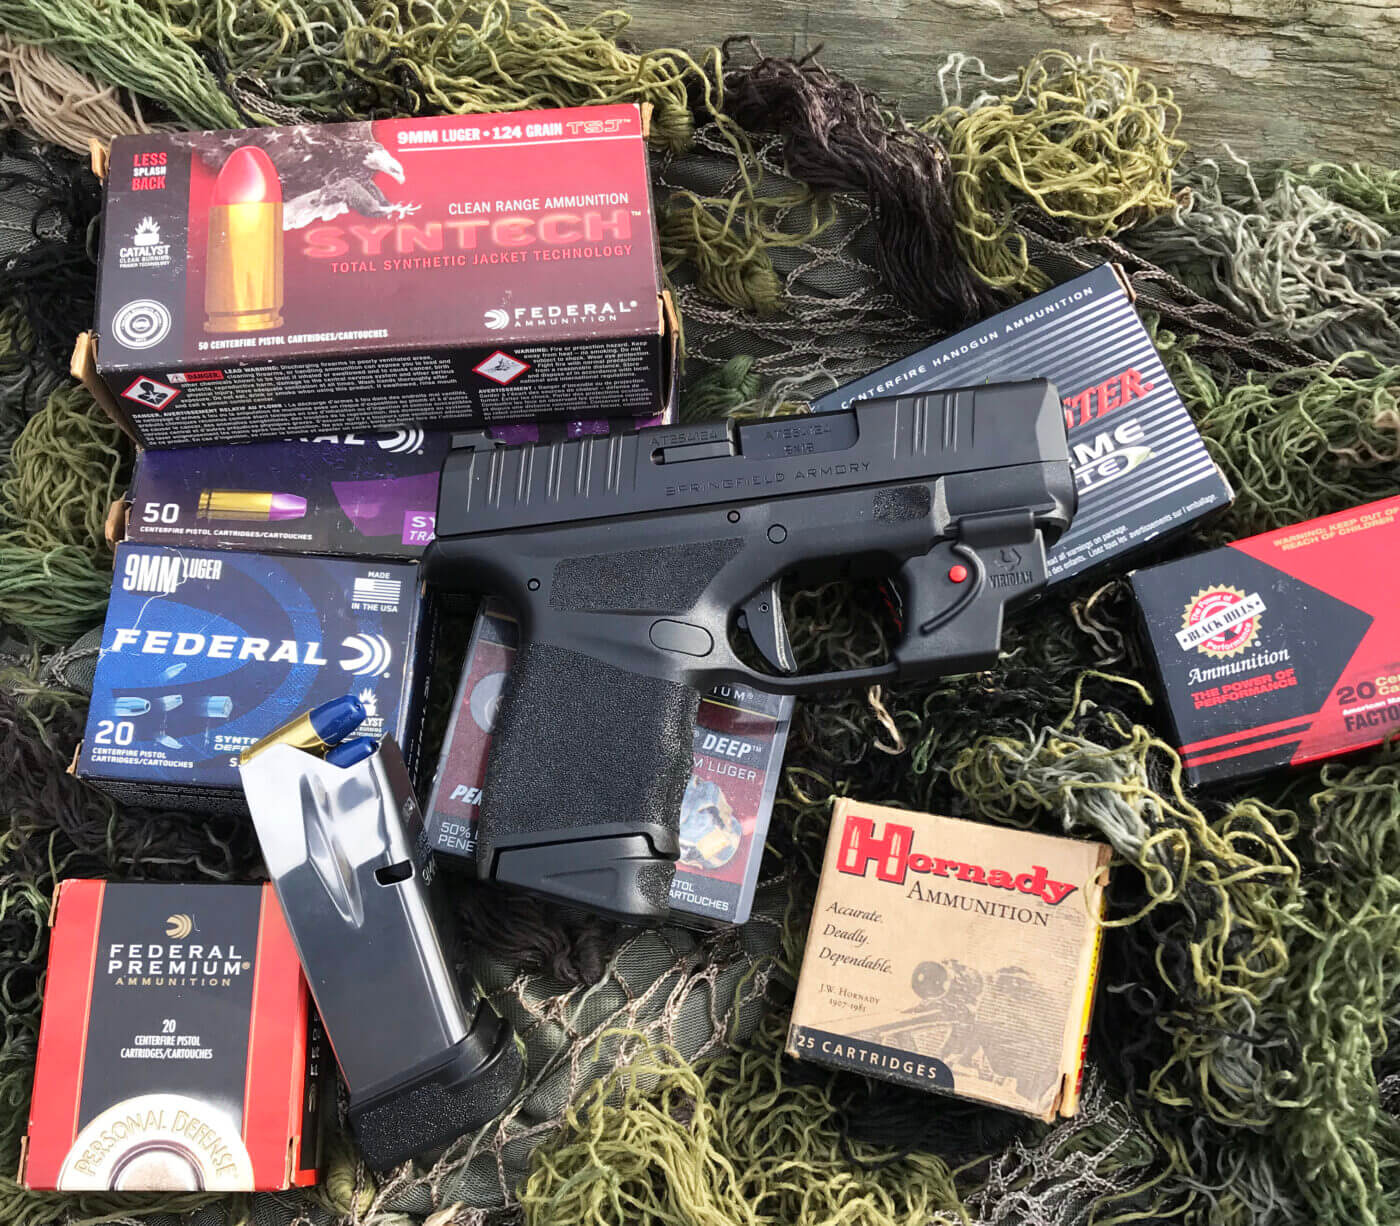 Author tested the Viridian laser unit with a variety of ammunition